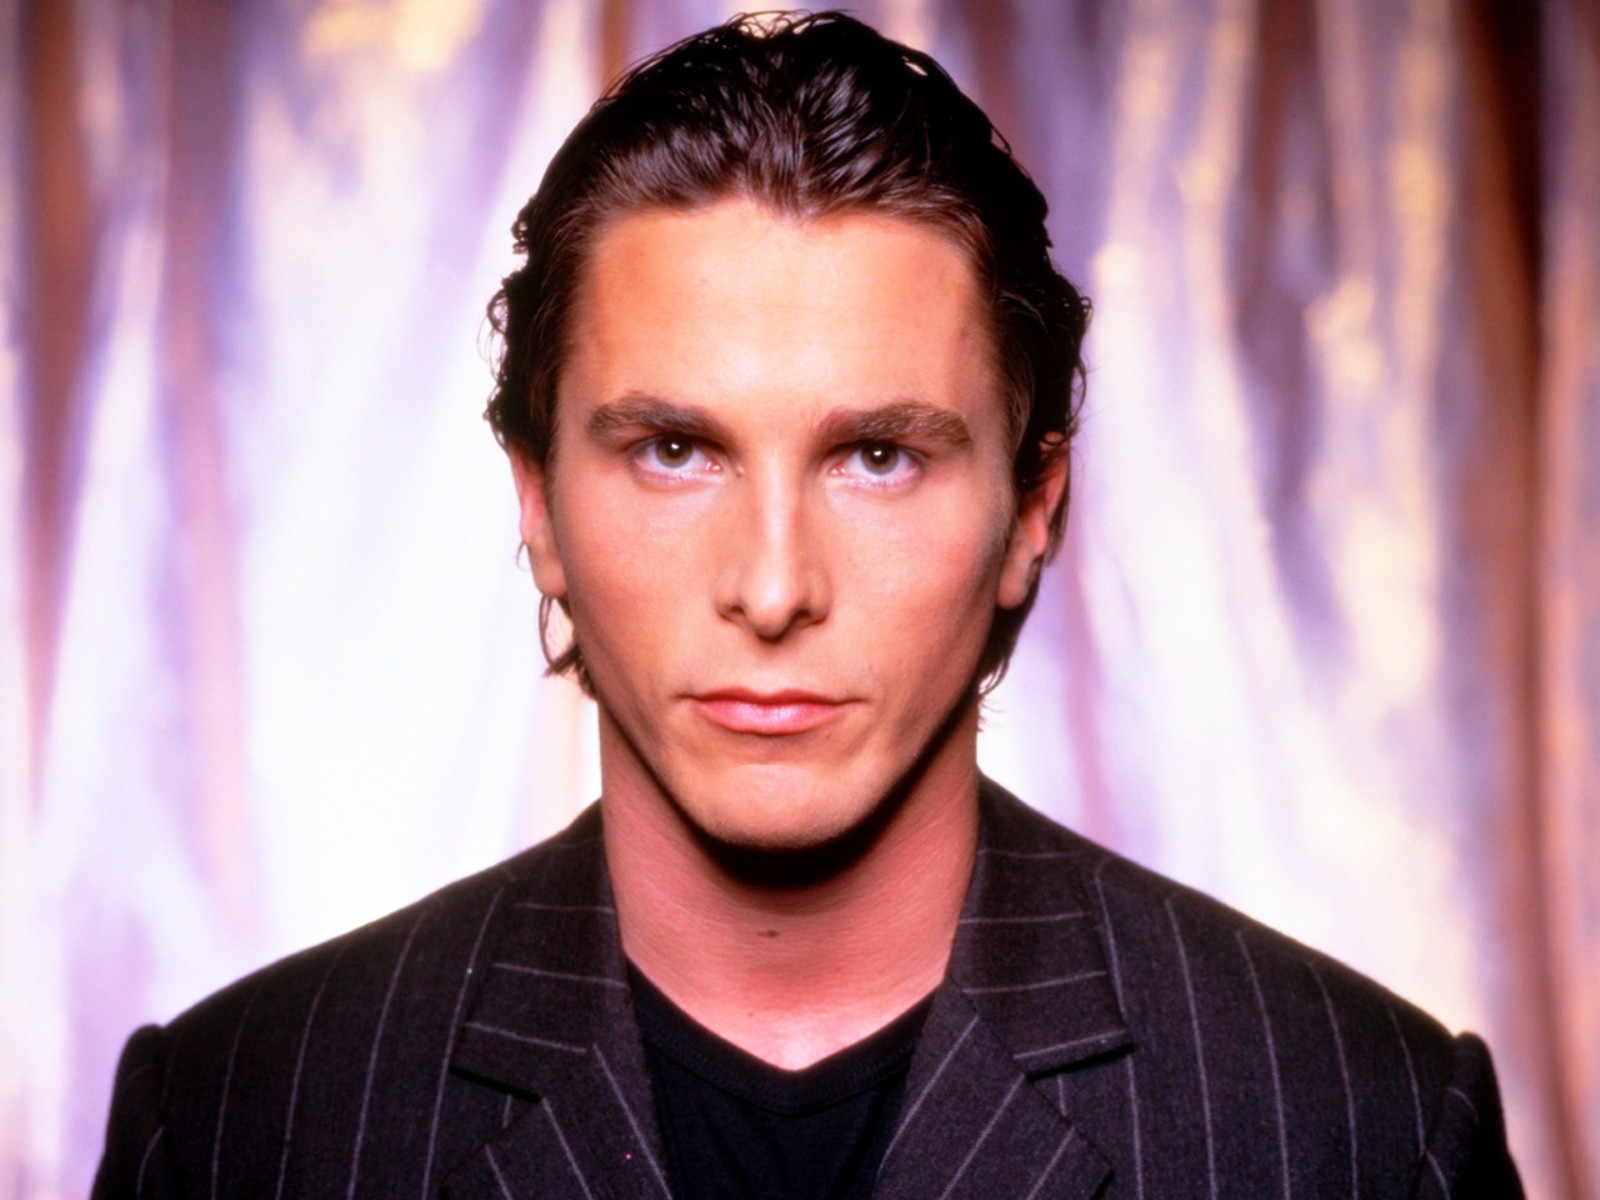 christian bale celebrity computer wallpaper 52760